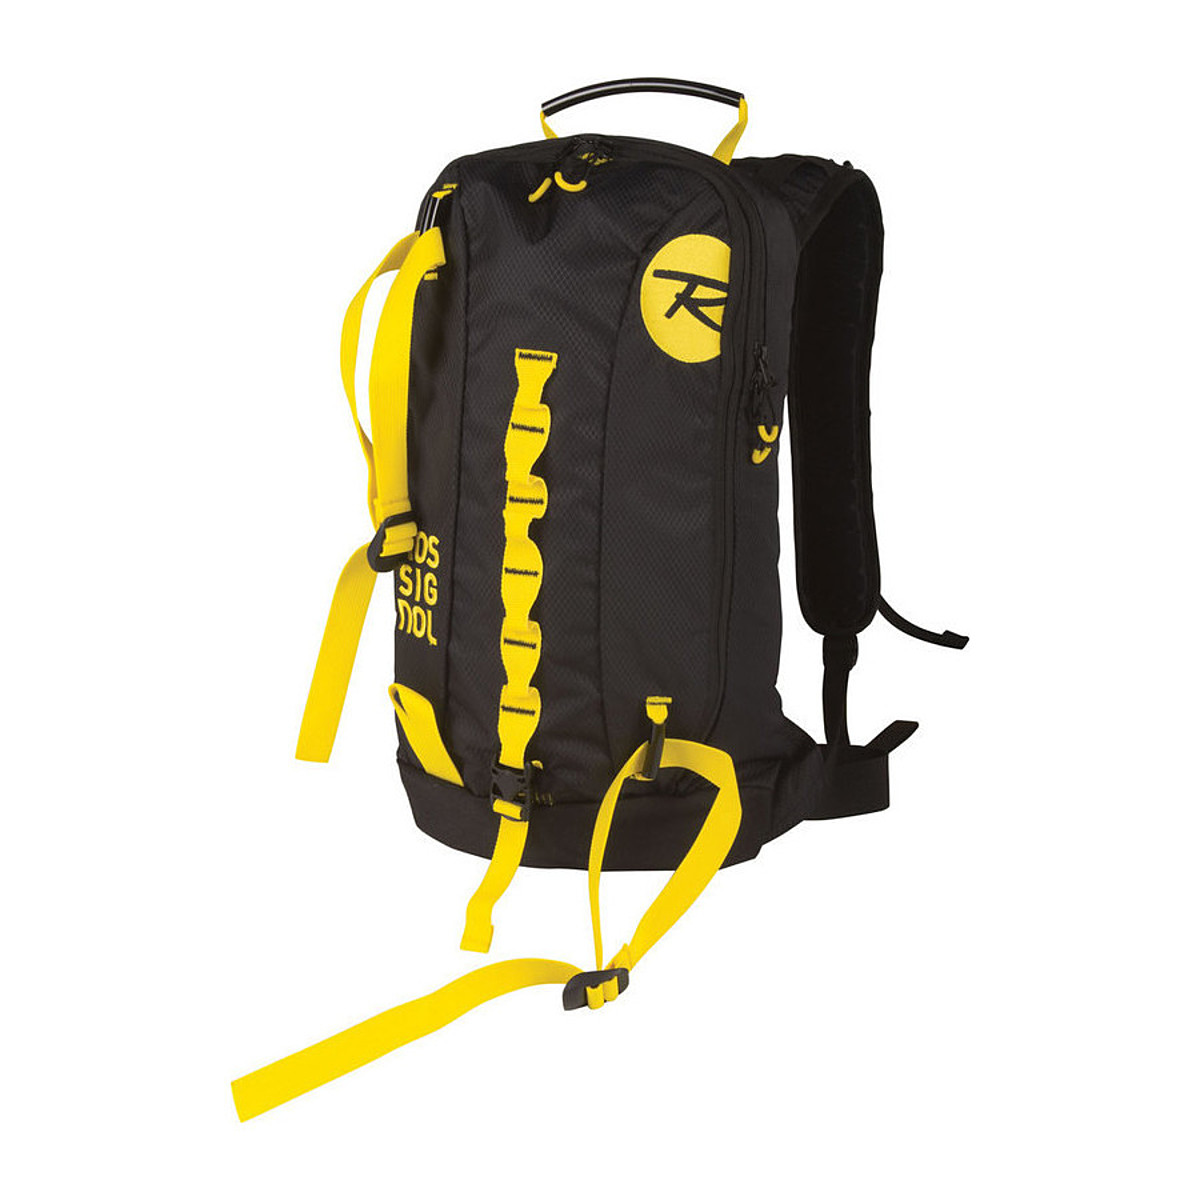 Rossignol Lap Backpack